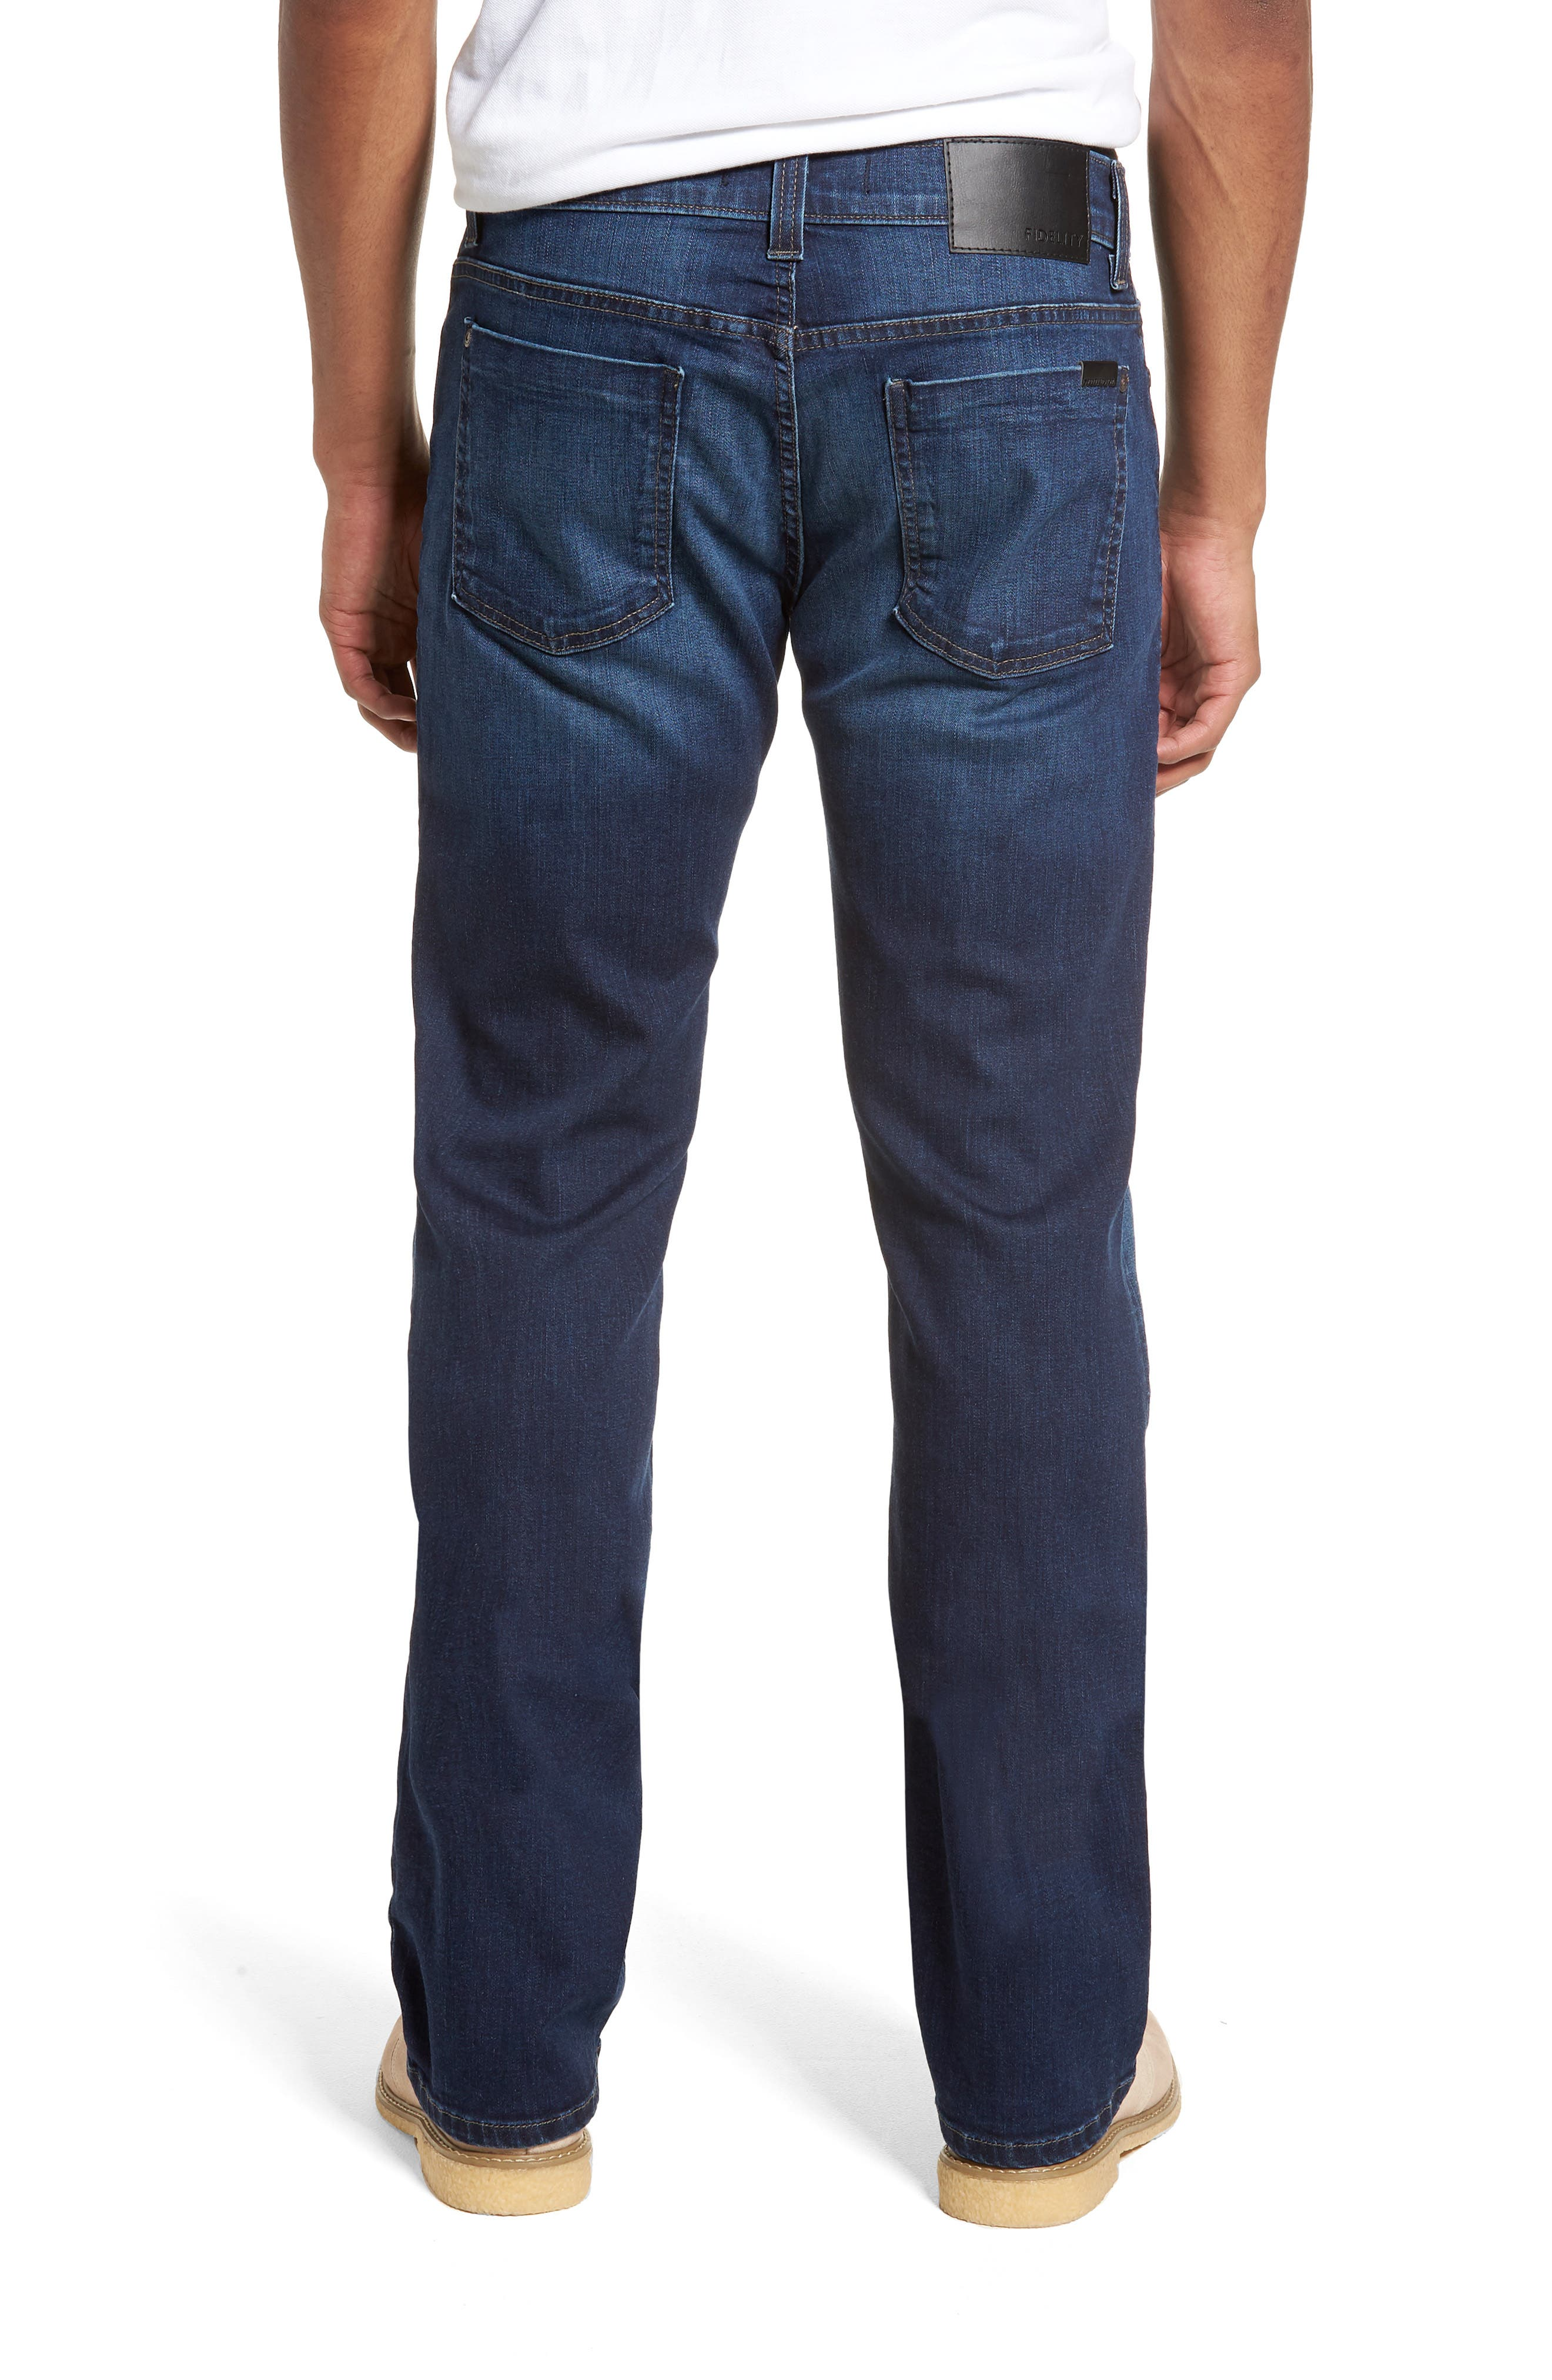 50-11 Relaxed Fit Jeans,                             Alternate thumbnail 2, color,                             CORNELL BLUE